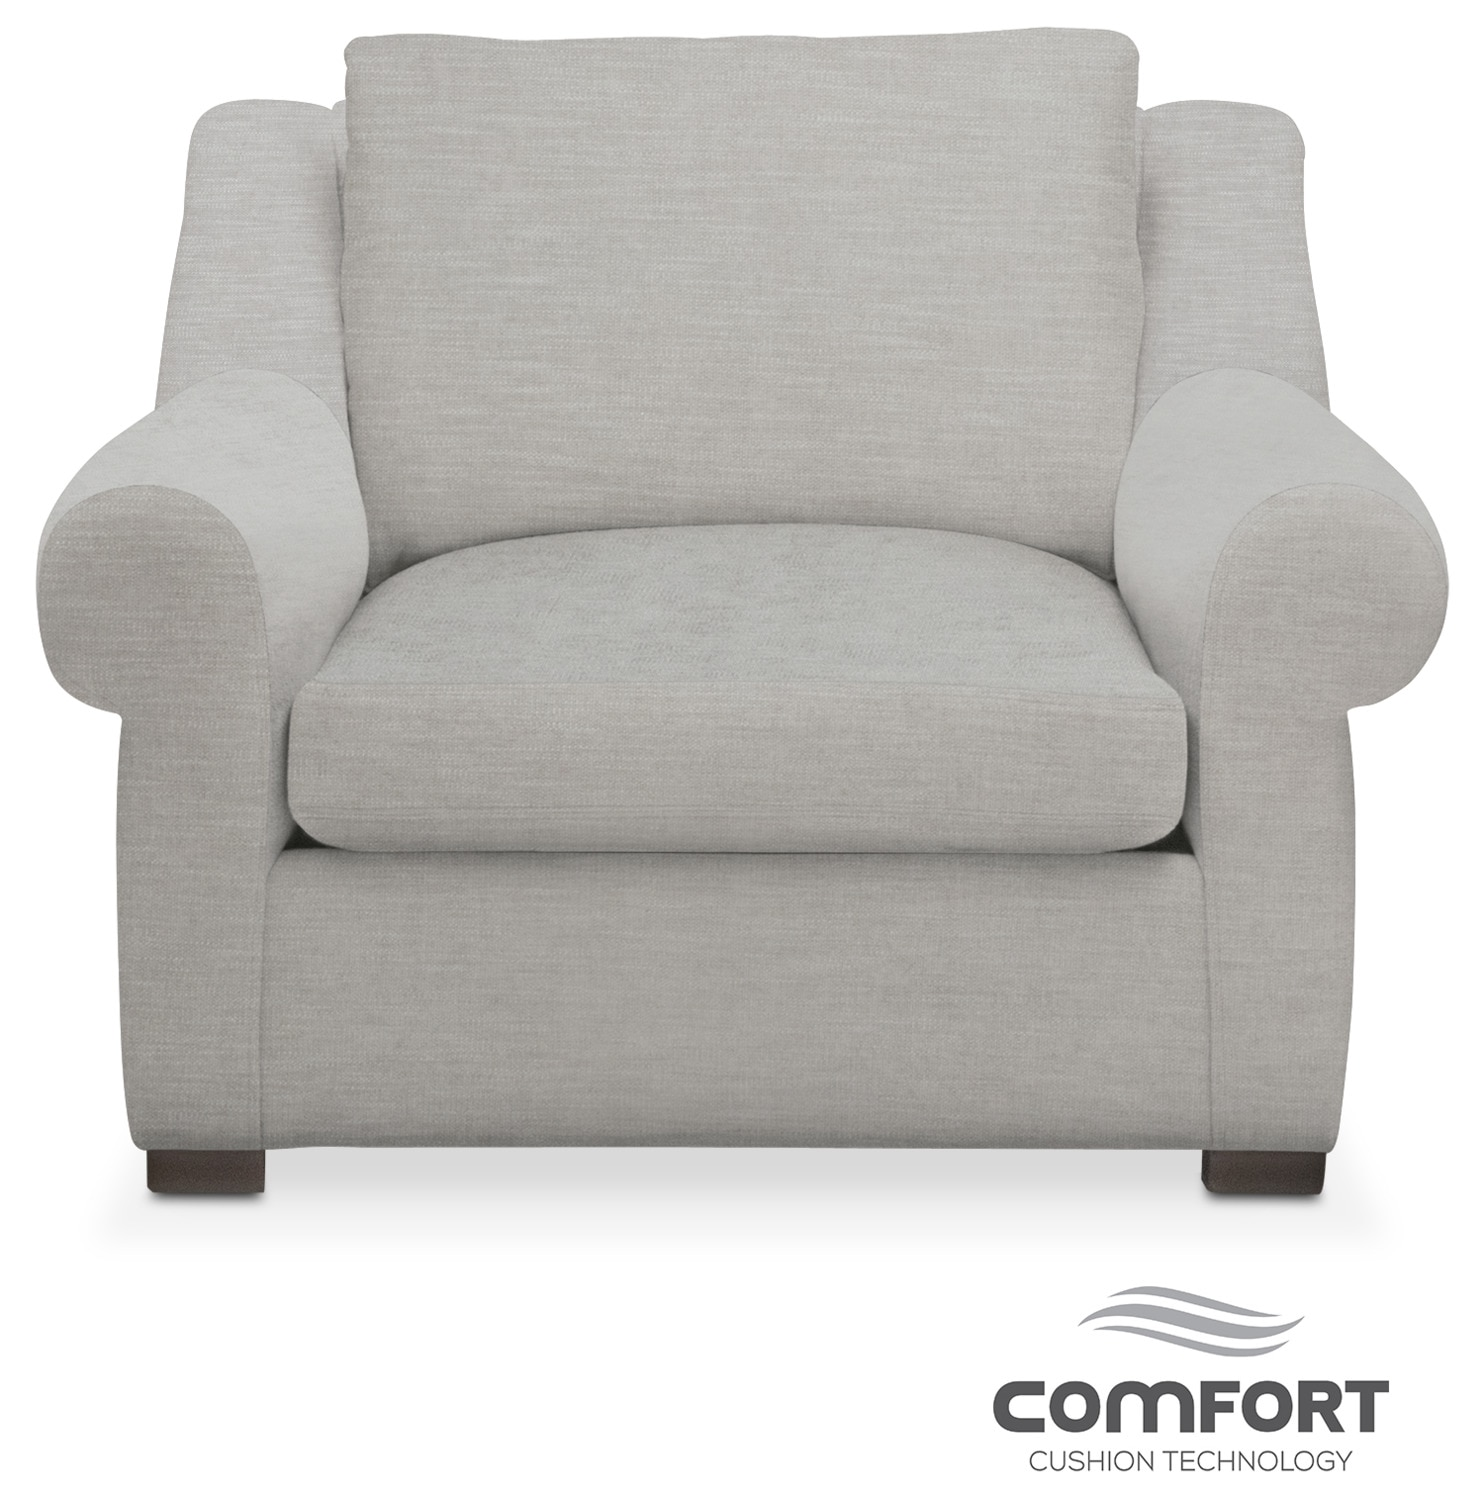 Living Room Furniture - Asher Comfort Chair - Dudley Gray